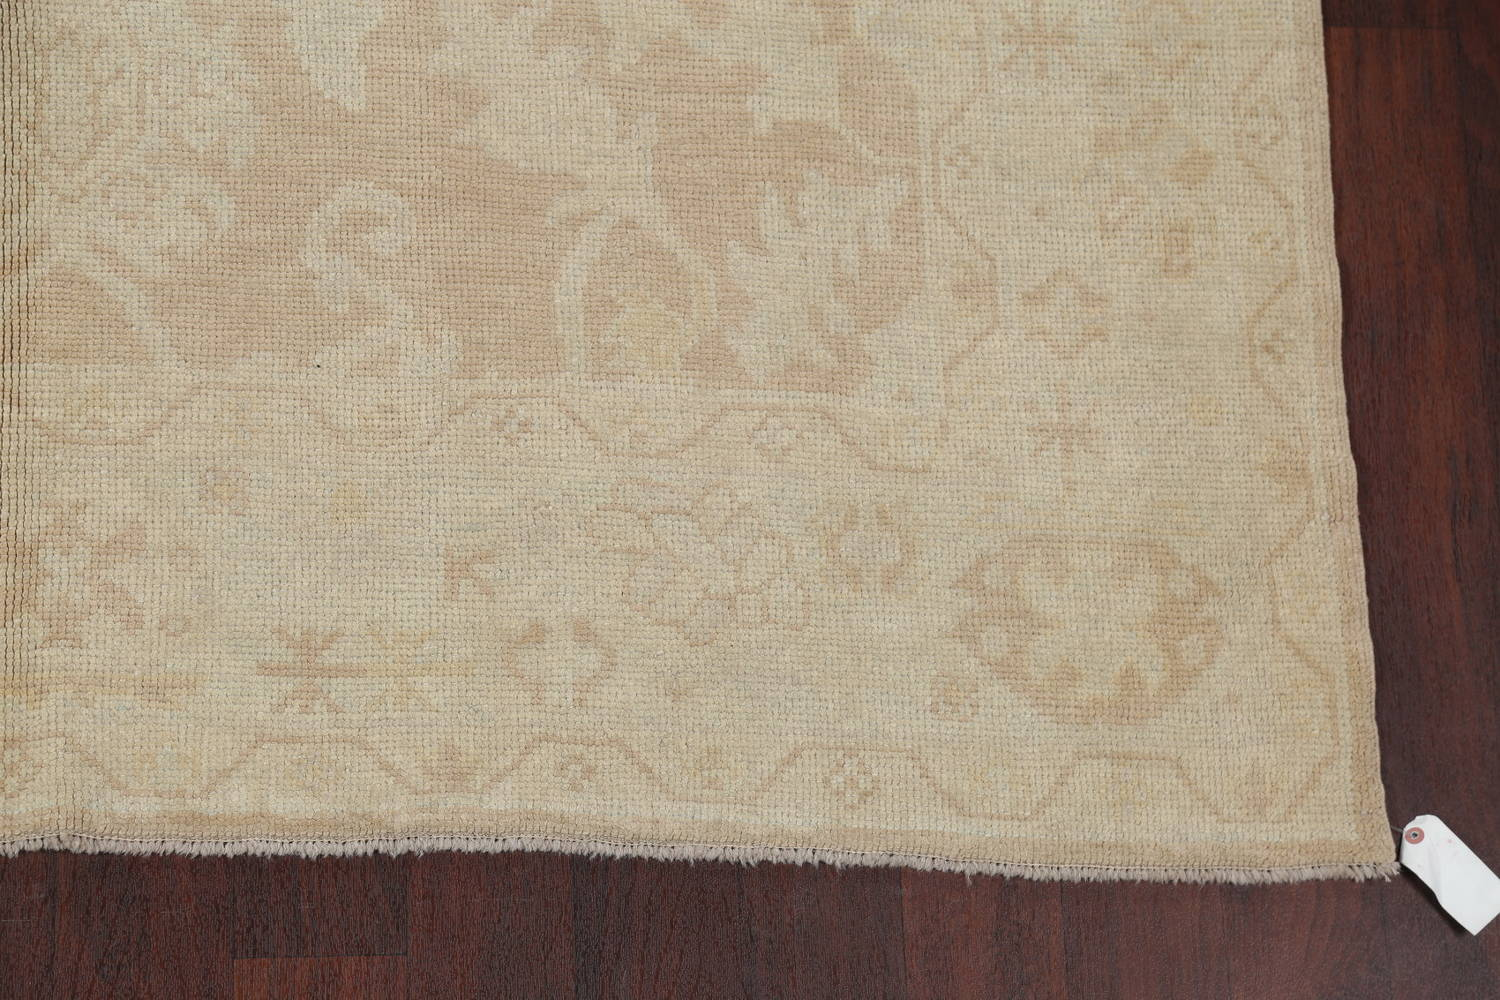 Vegetable Dye Muted Gold Oushak Turkish Hand-Knotted Runner Rug 7x16 image 6